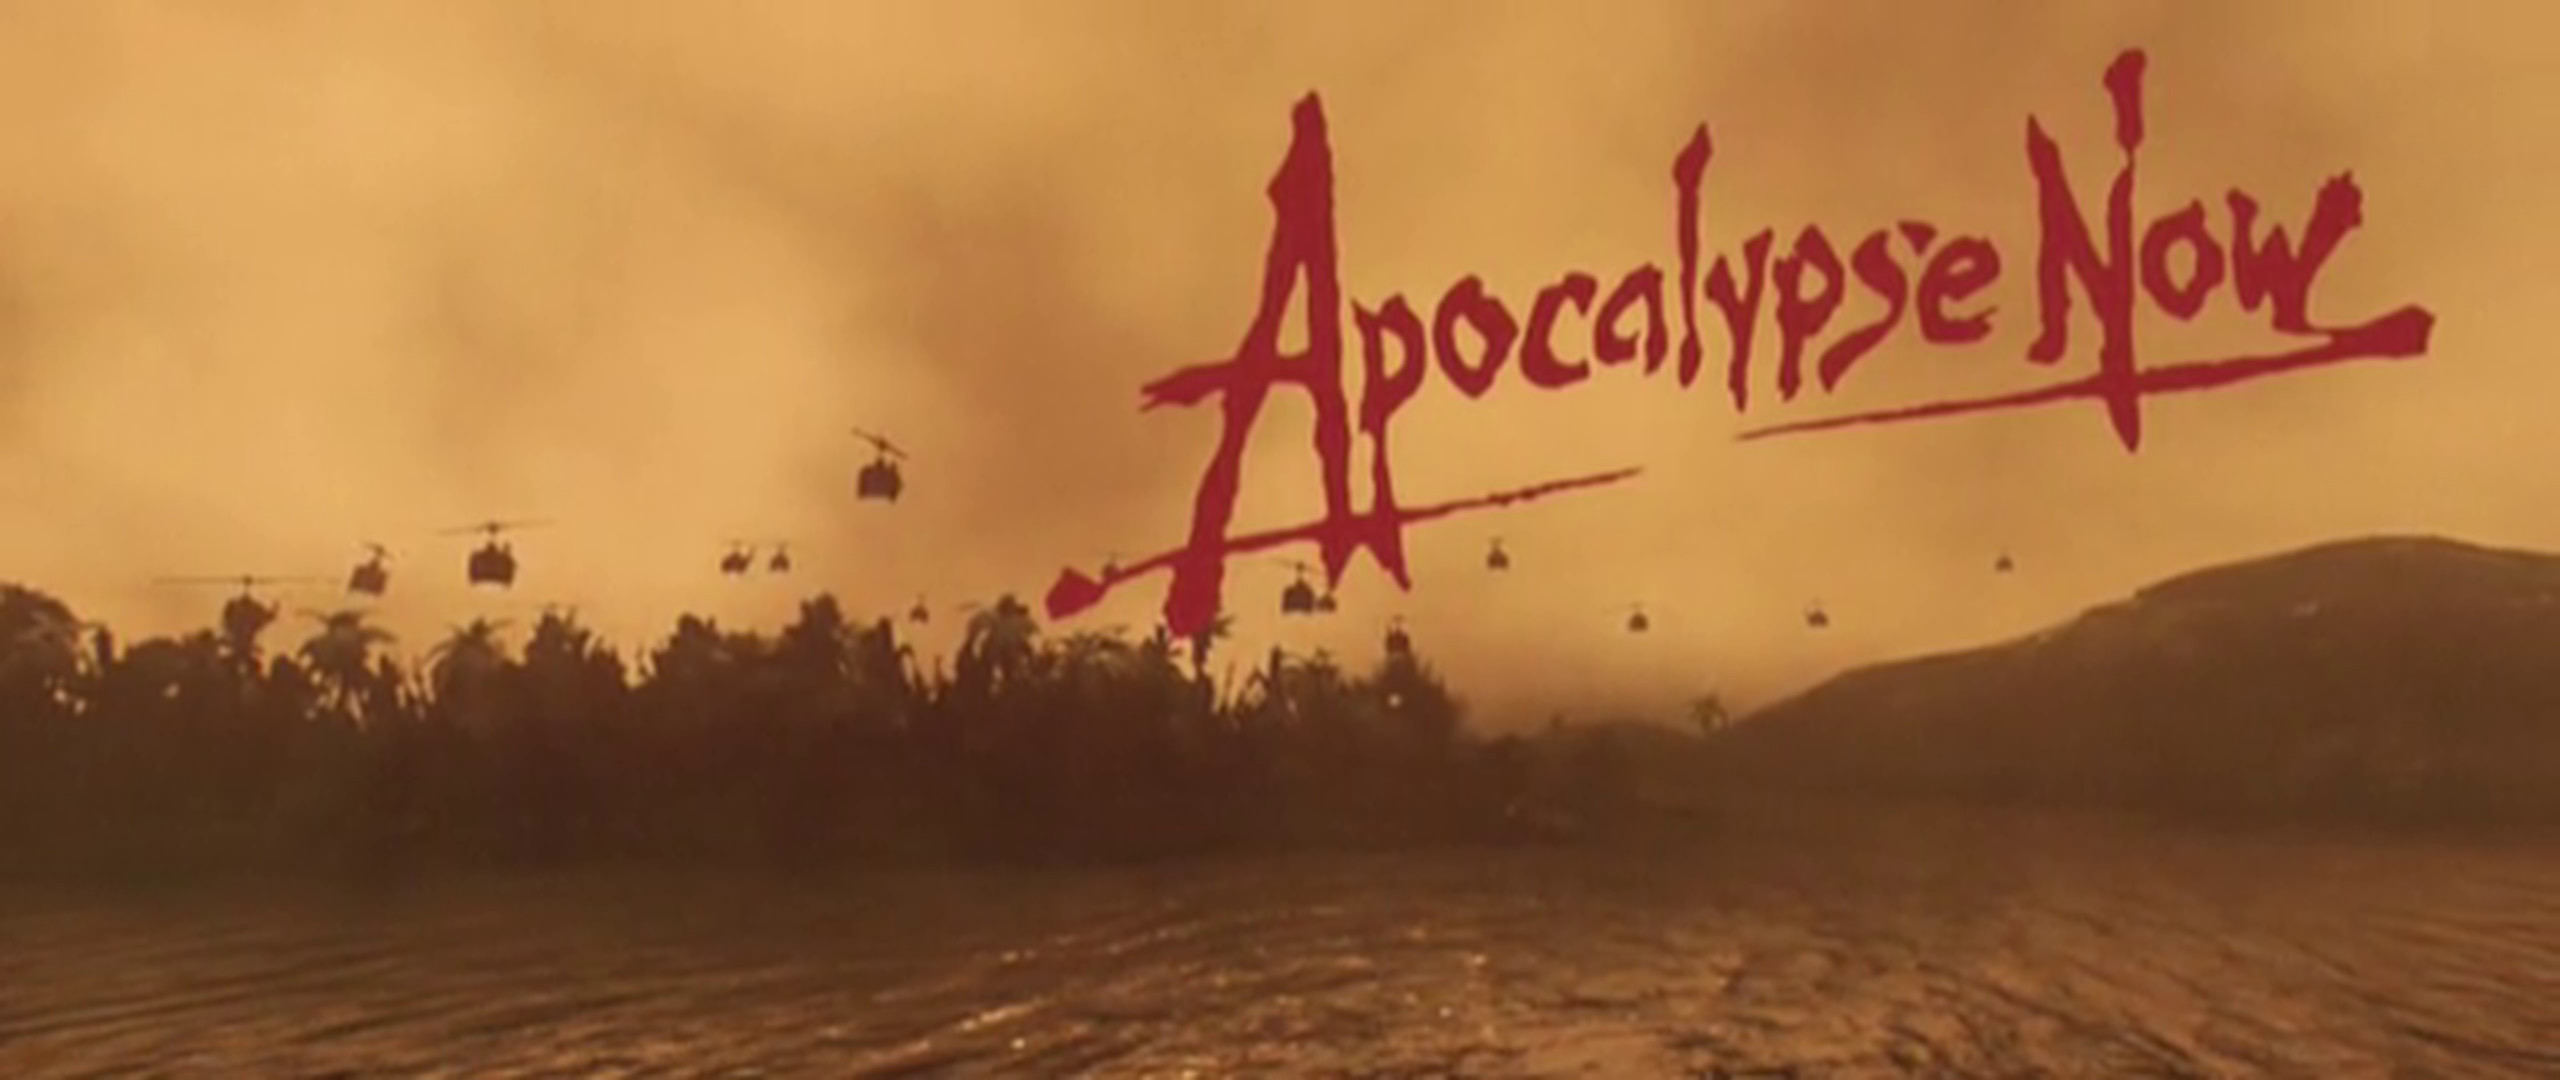 Famous Movie Quotes Wallpapers Apocalypse Now Wallpaper 65 Images